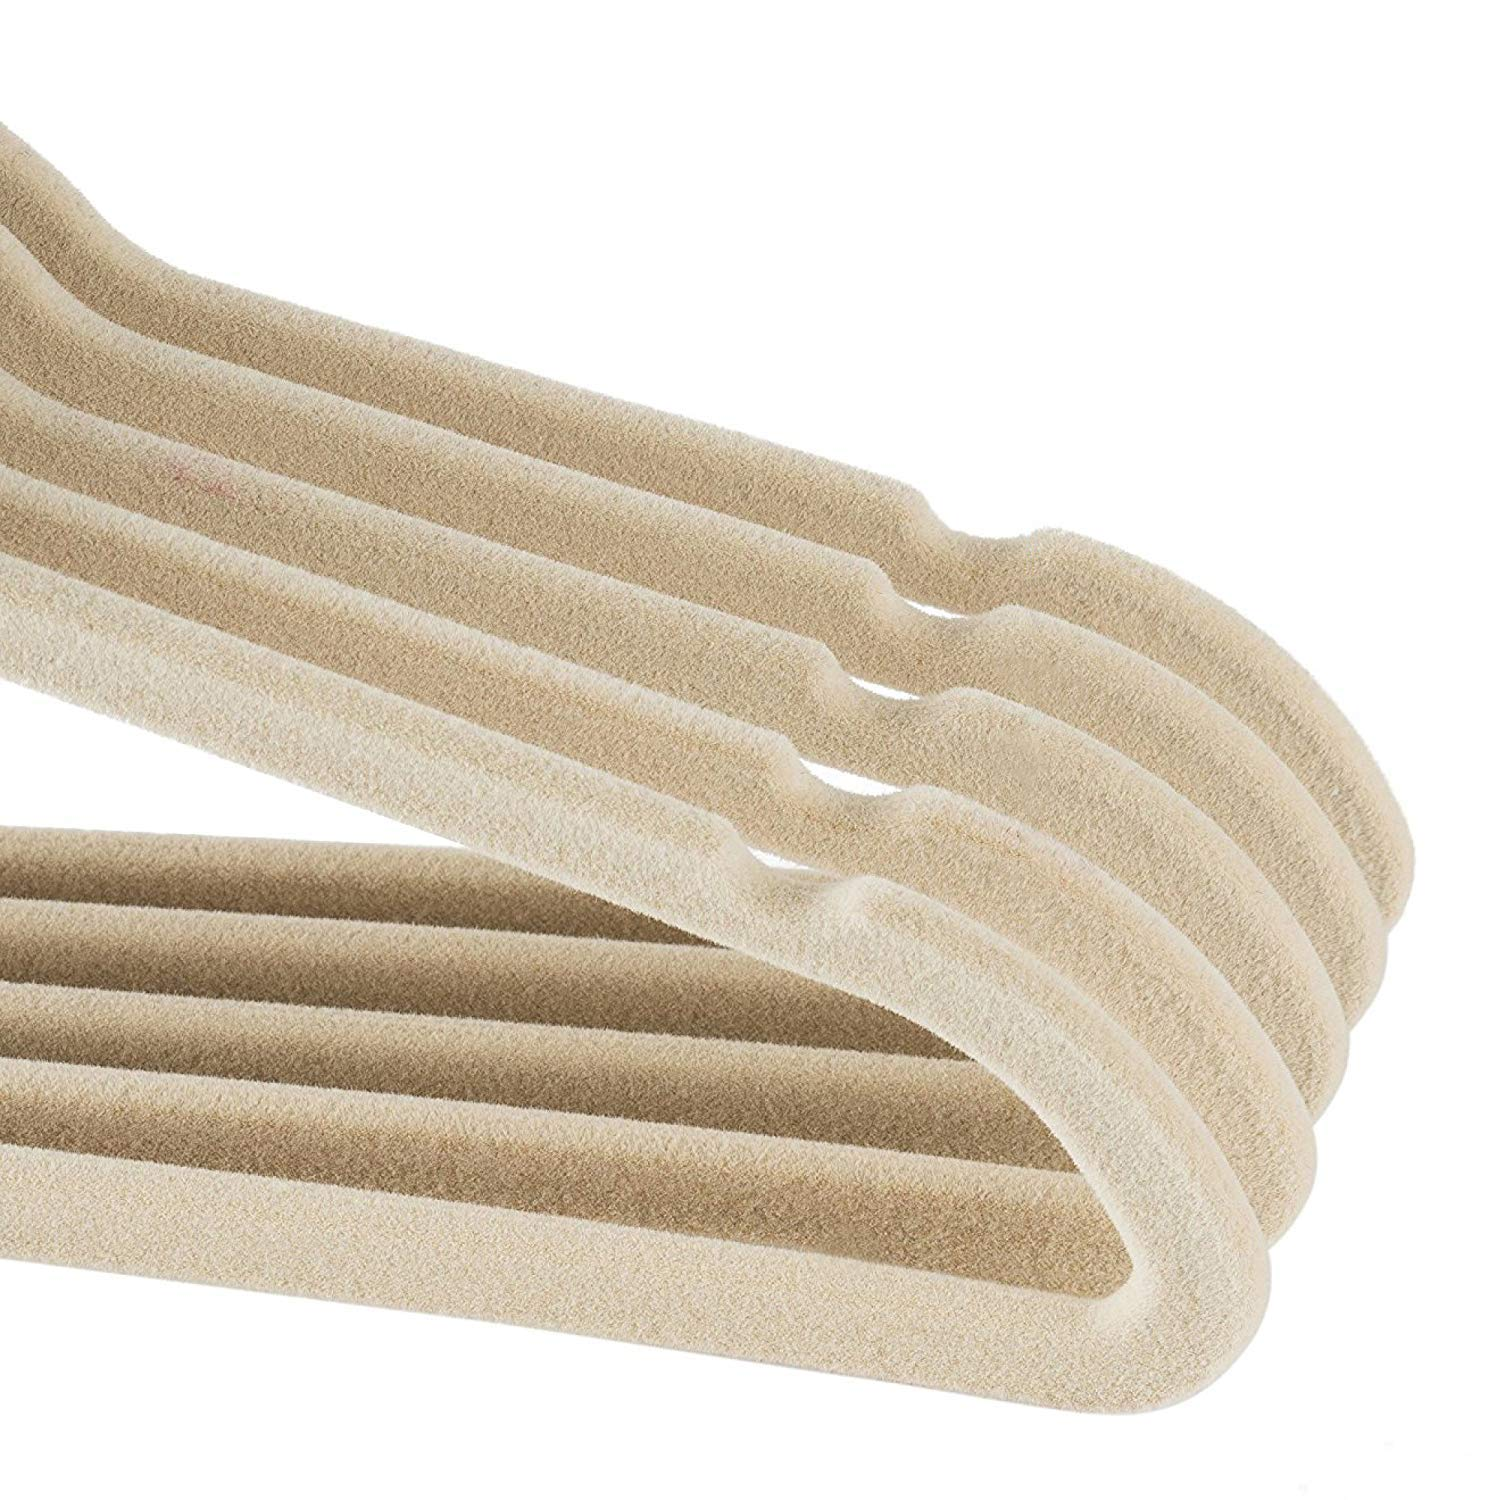 Beige baby sized Mangotree Velvety Clothes Hangers Ultra Thin and No Slip design 15 Pack